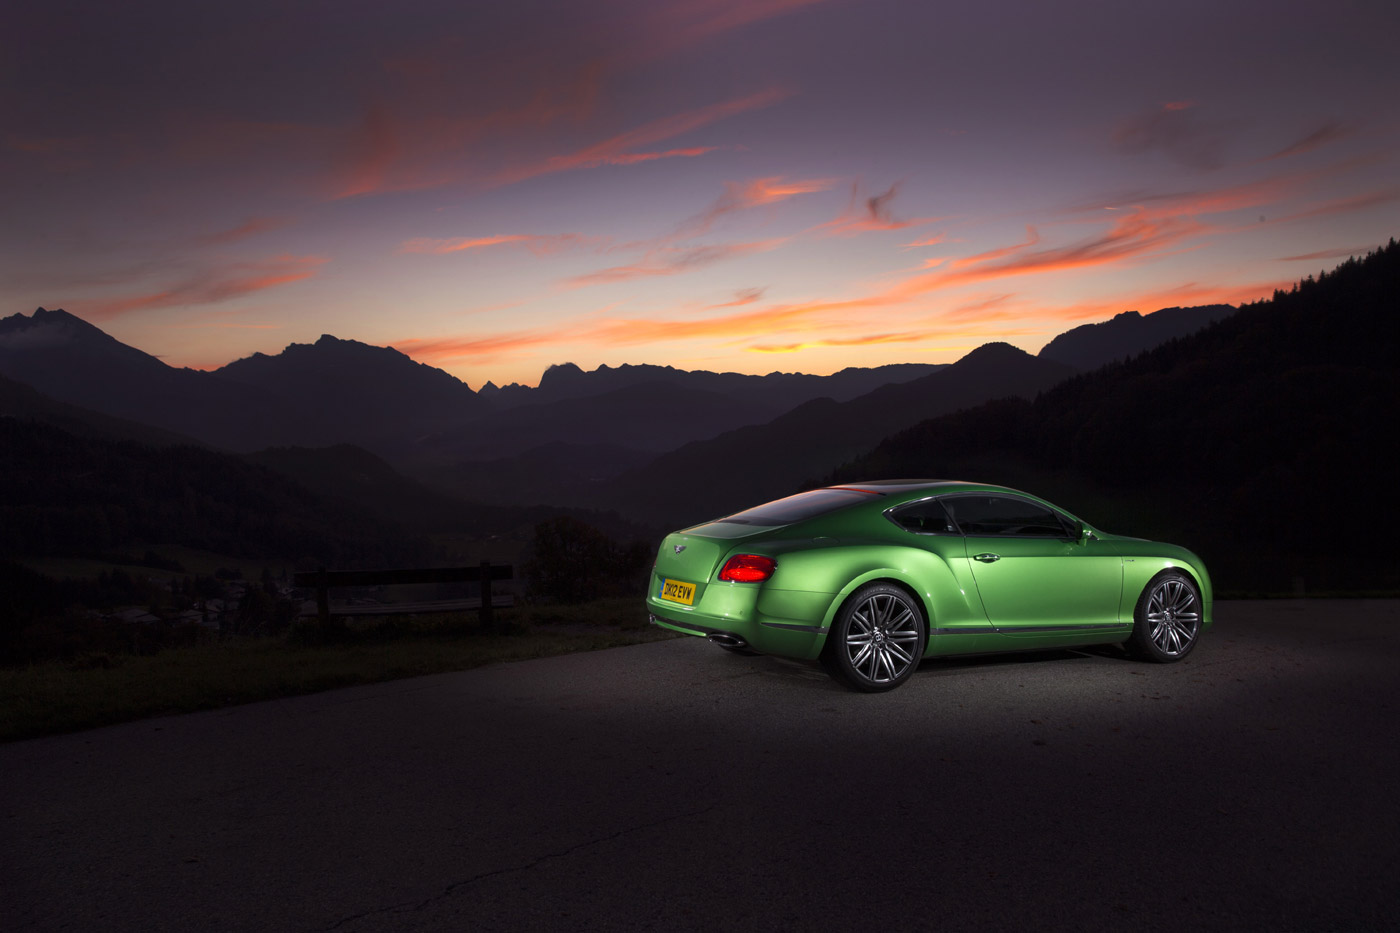 <p>Bentley Continental GT Speed in Apple Green, photographed at sunset in Austria.</p>